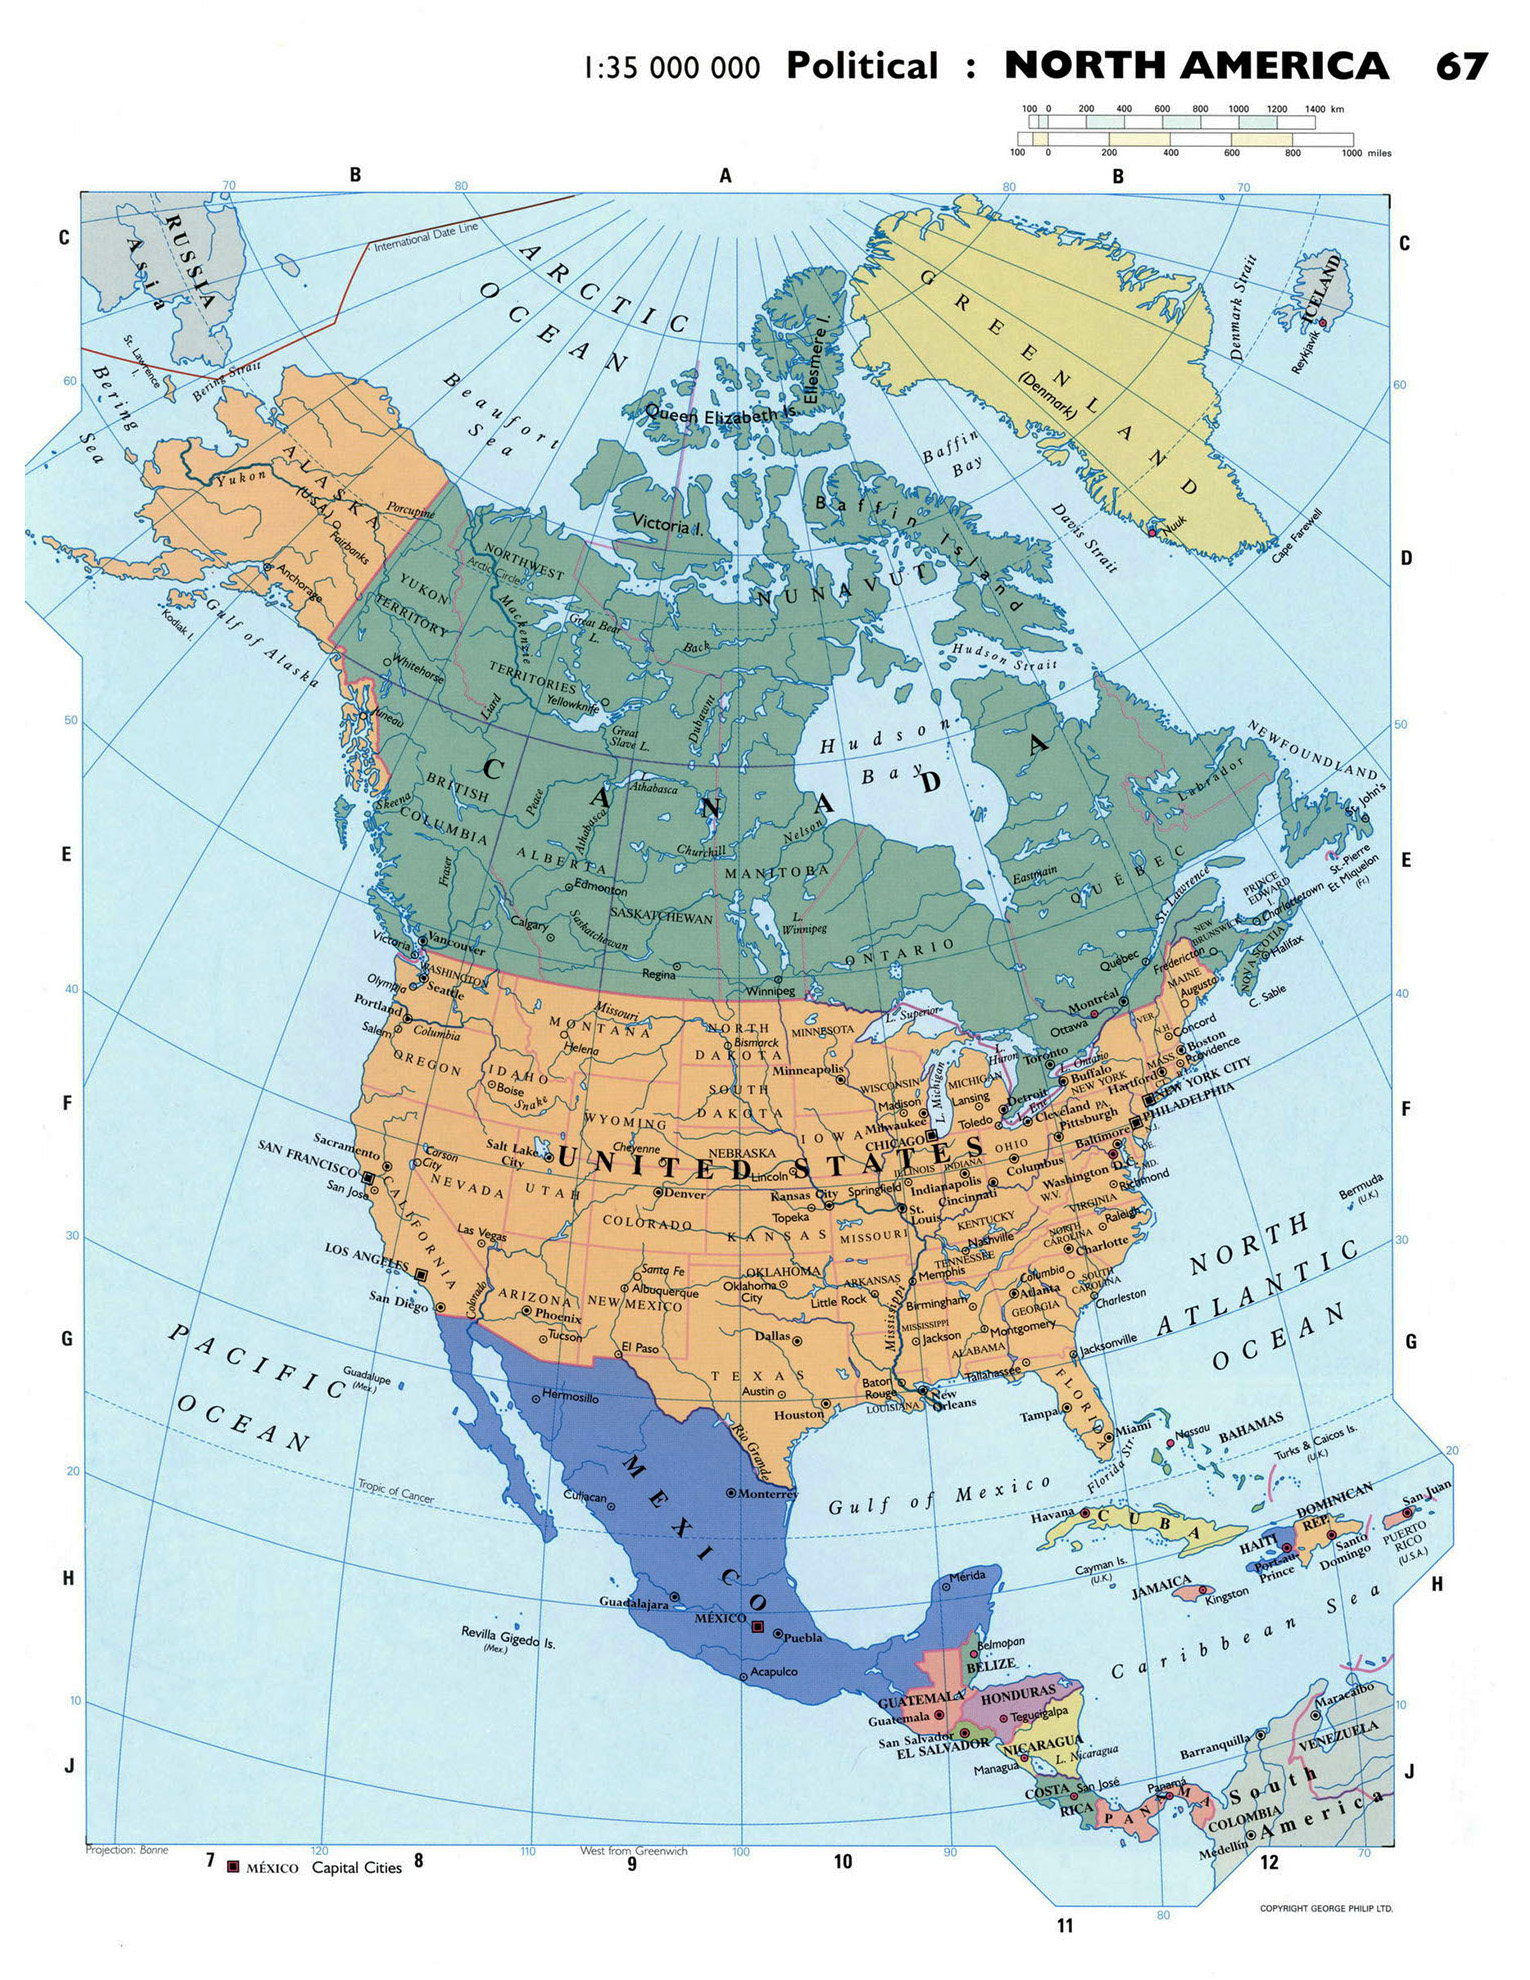 Maps of north america and north american countries political large detailed political map of north america gumiabroncs Image collections